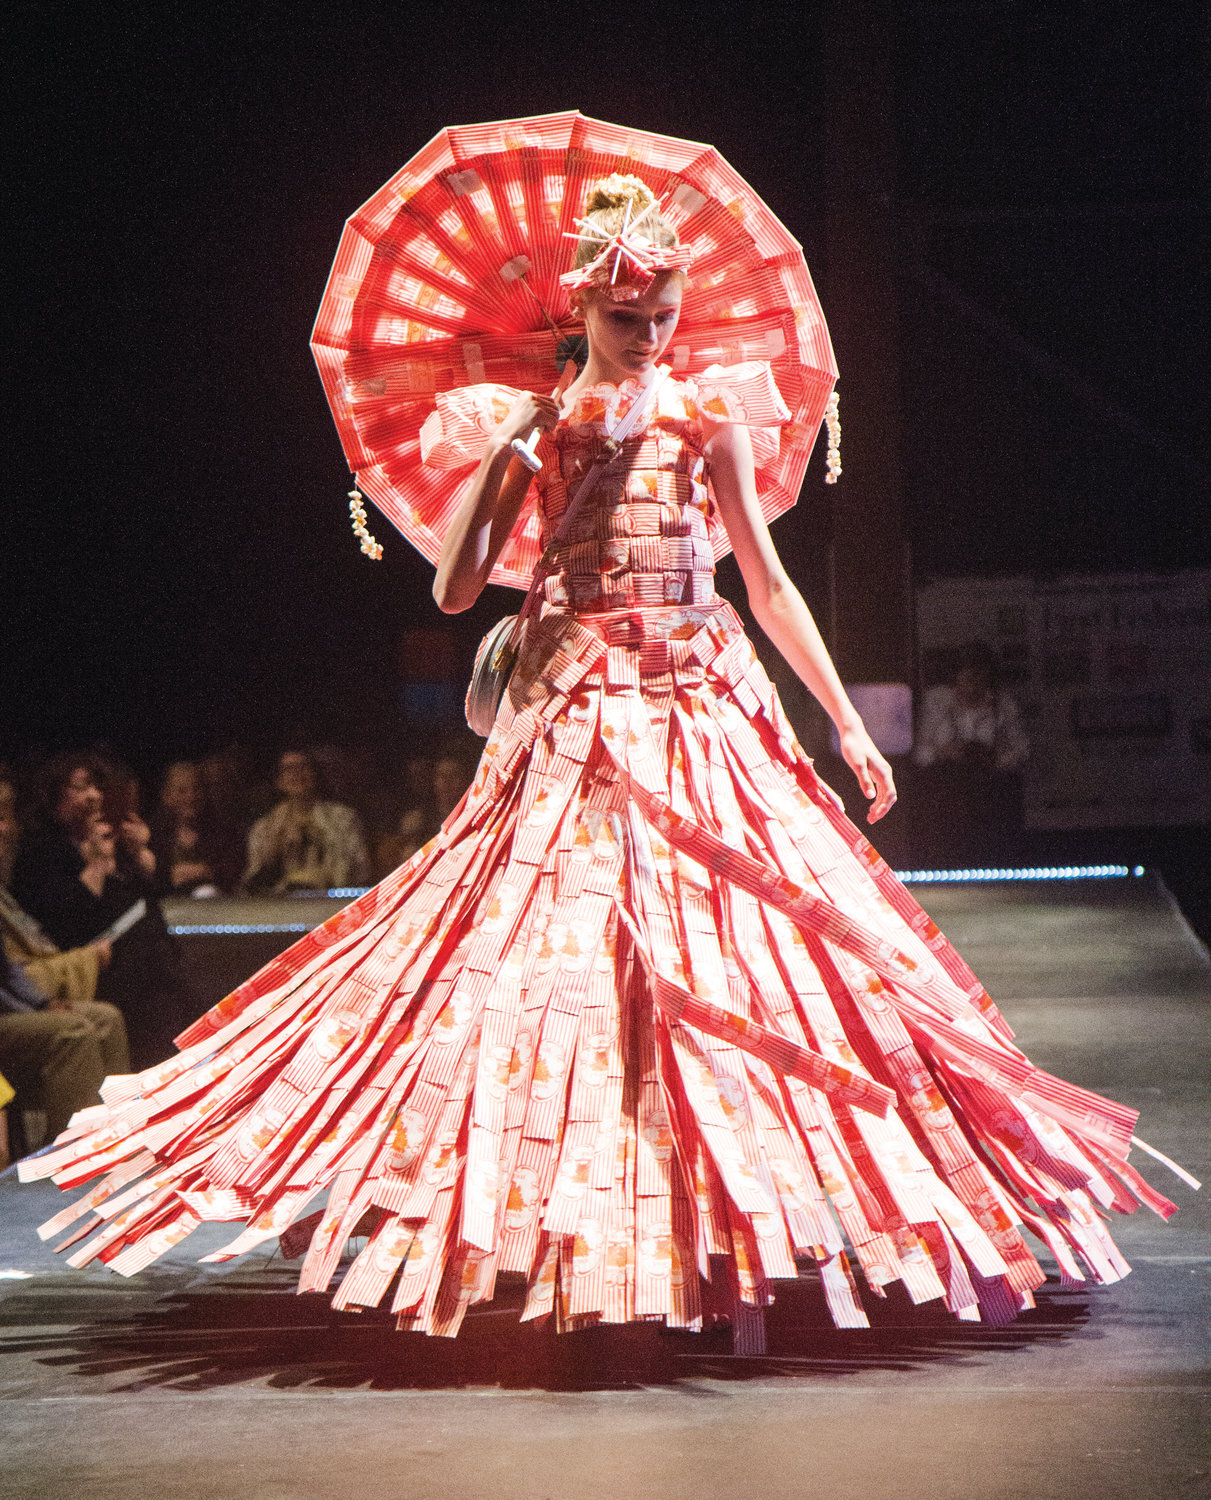 Sixteen-year-old Elvira Erickson created this dress out of popcorn bags, inspired by her sister, model Ava Erickson's, favorite snack.